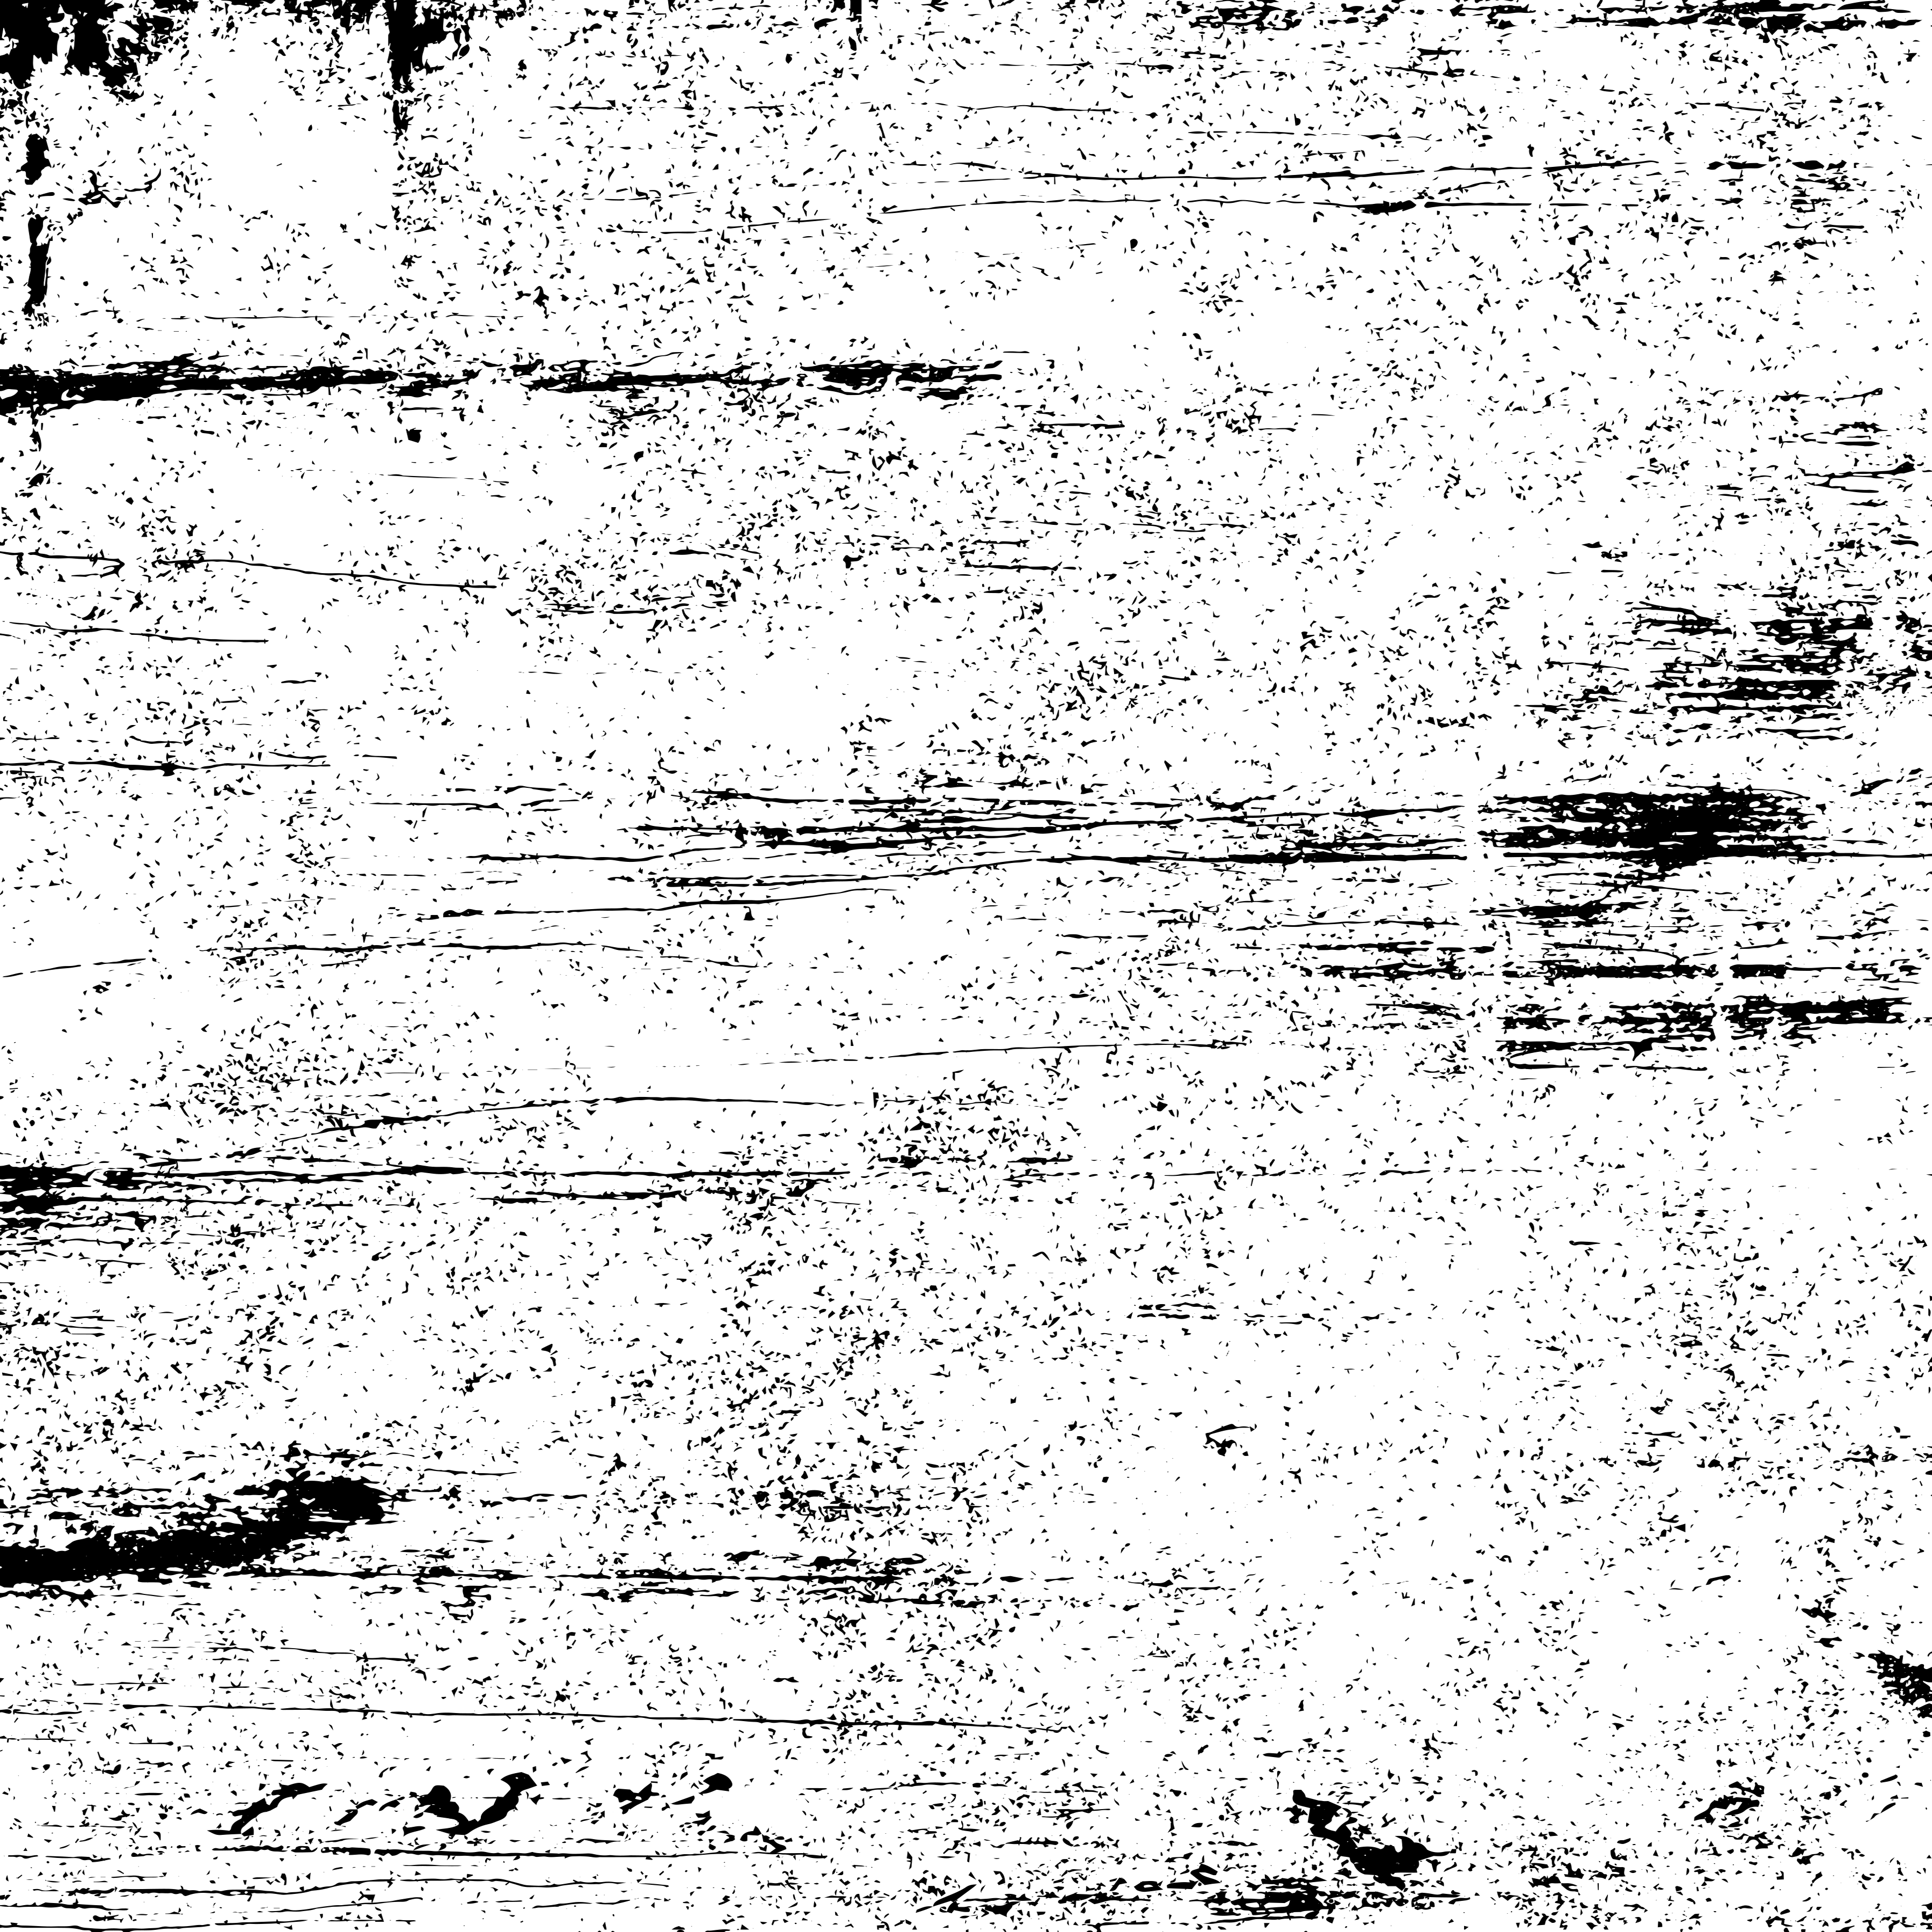 freebie: commercial use grunge png overlay – HG Designs